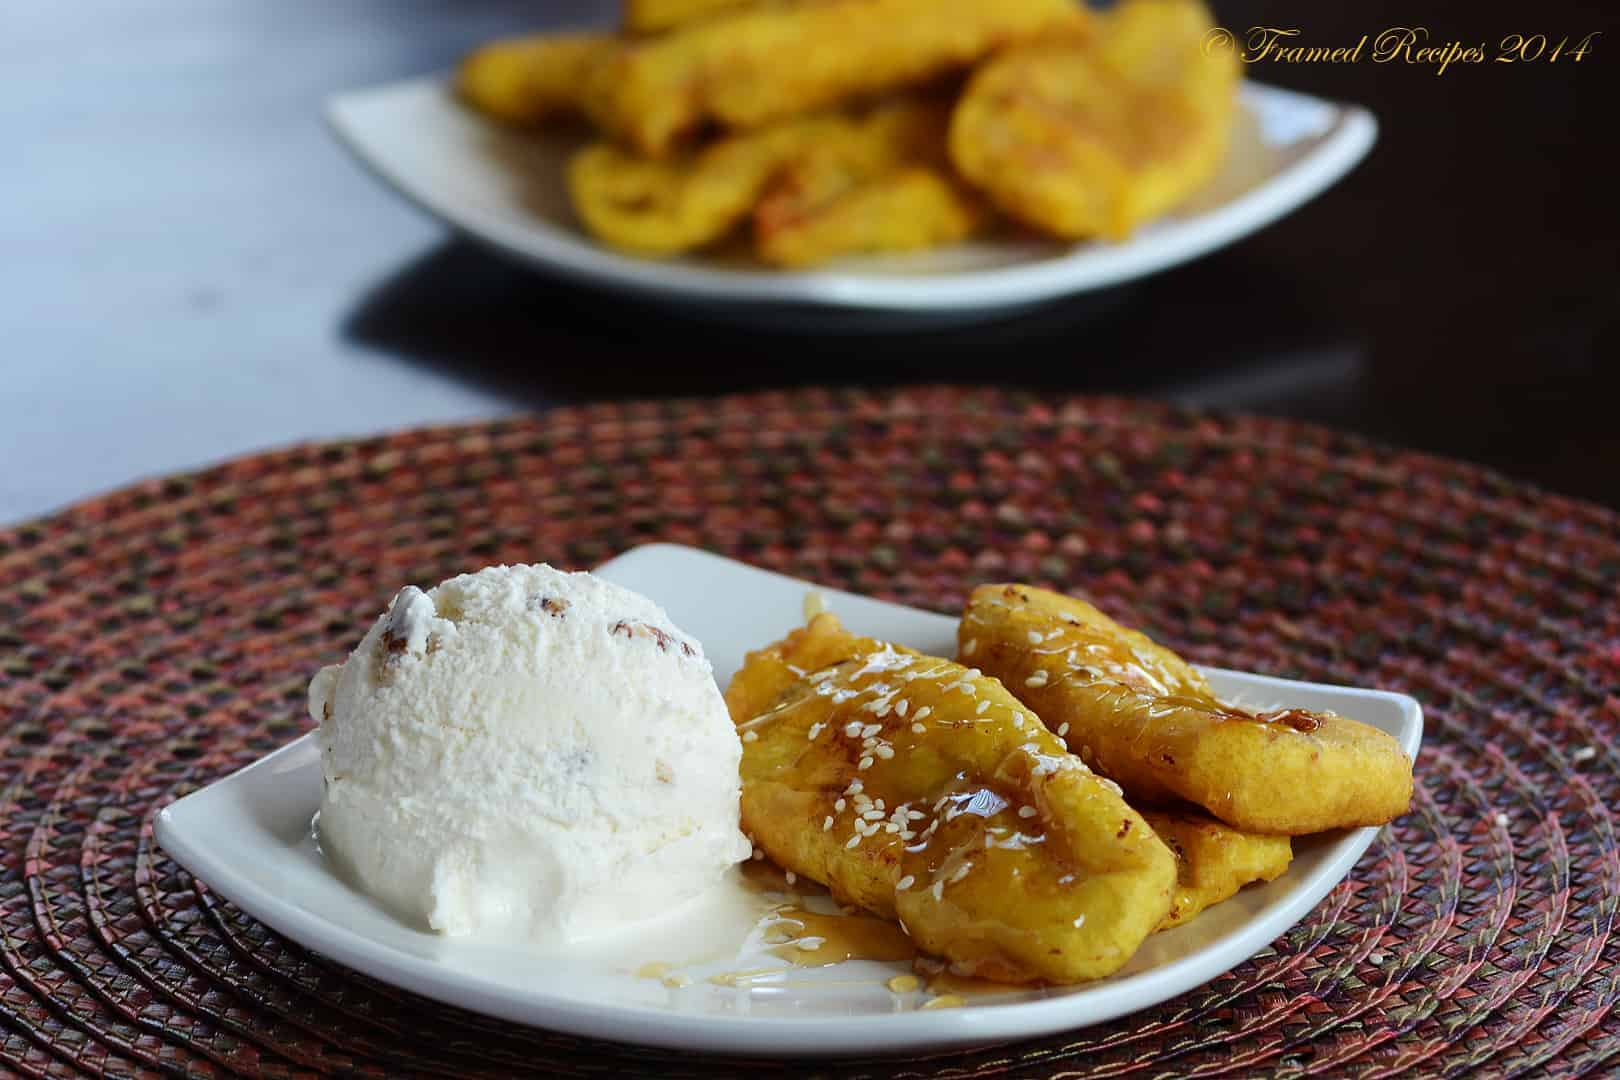 DSC_4231_Banana_Fritters_With_Ice_Cream